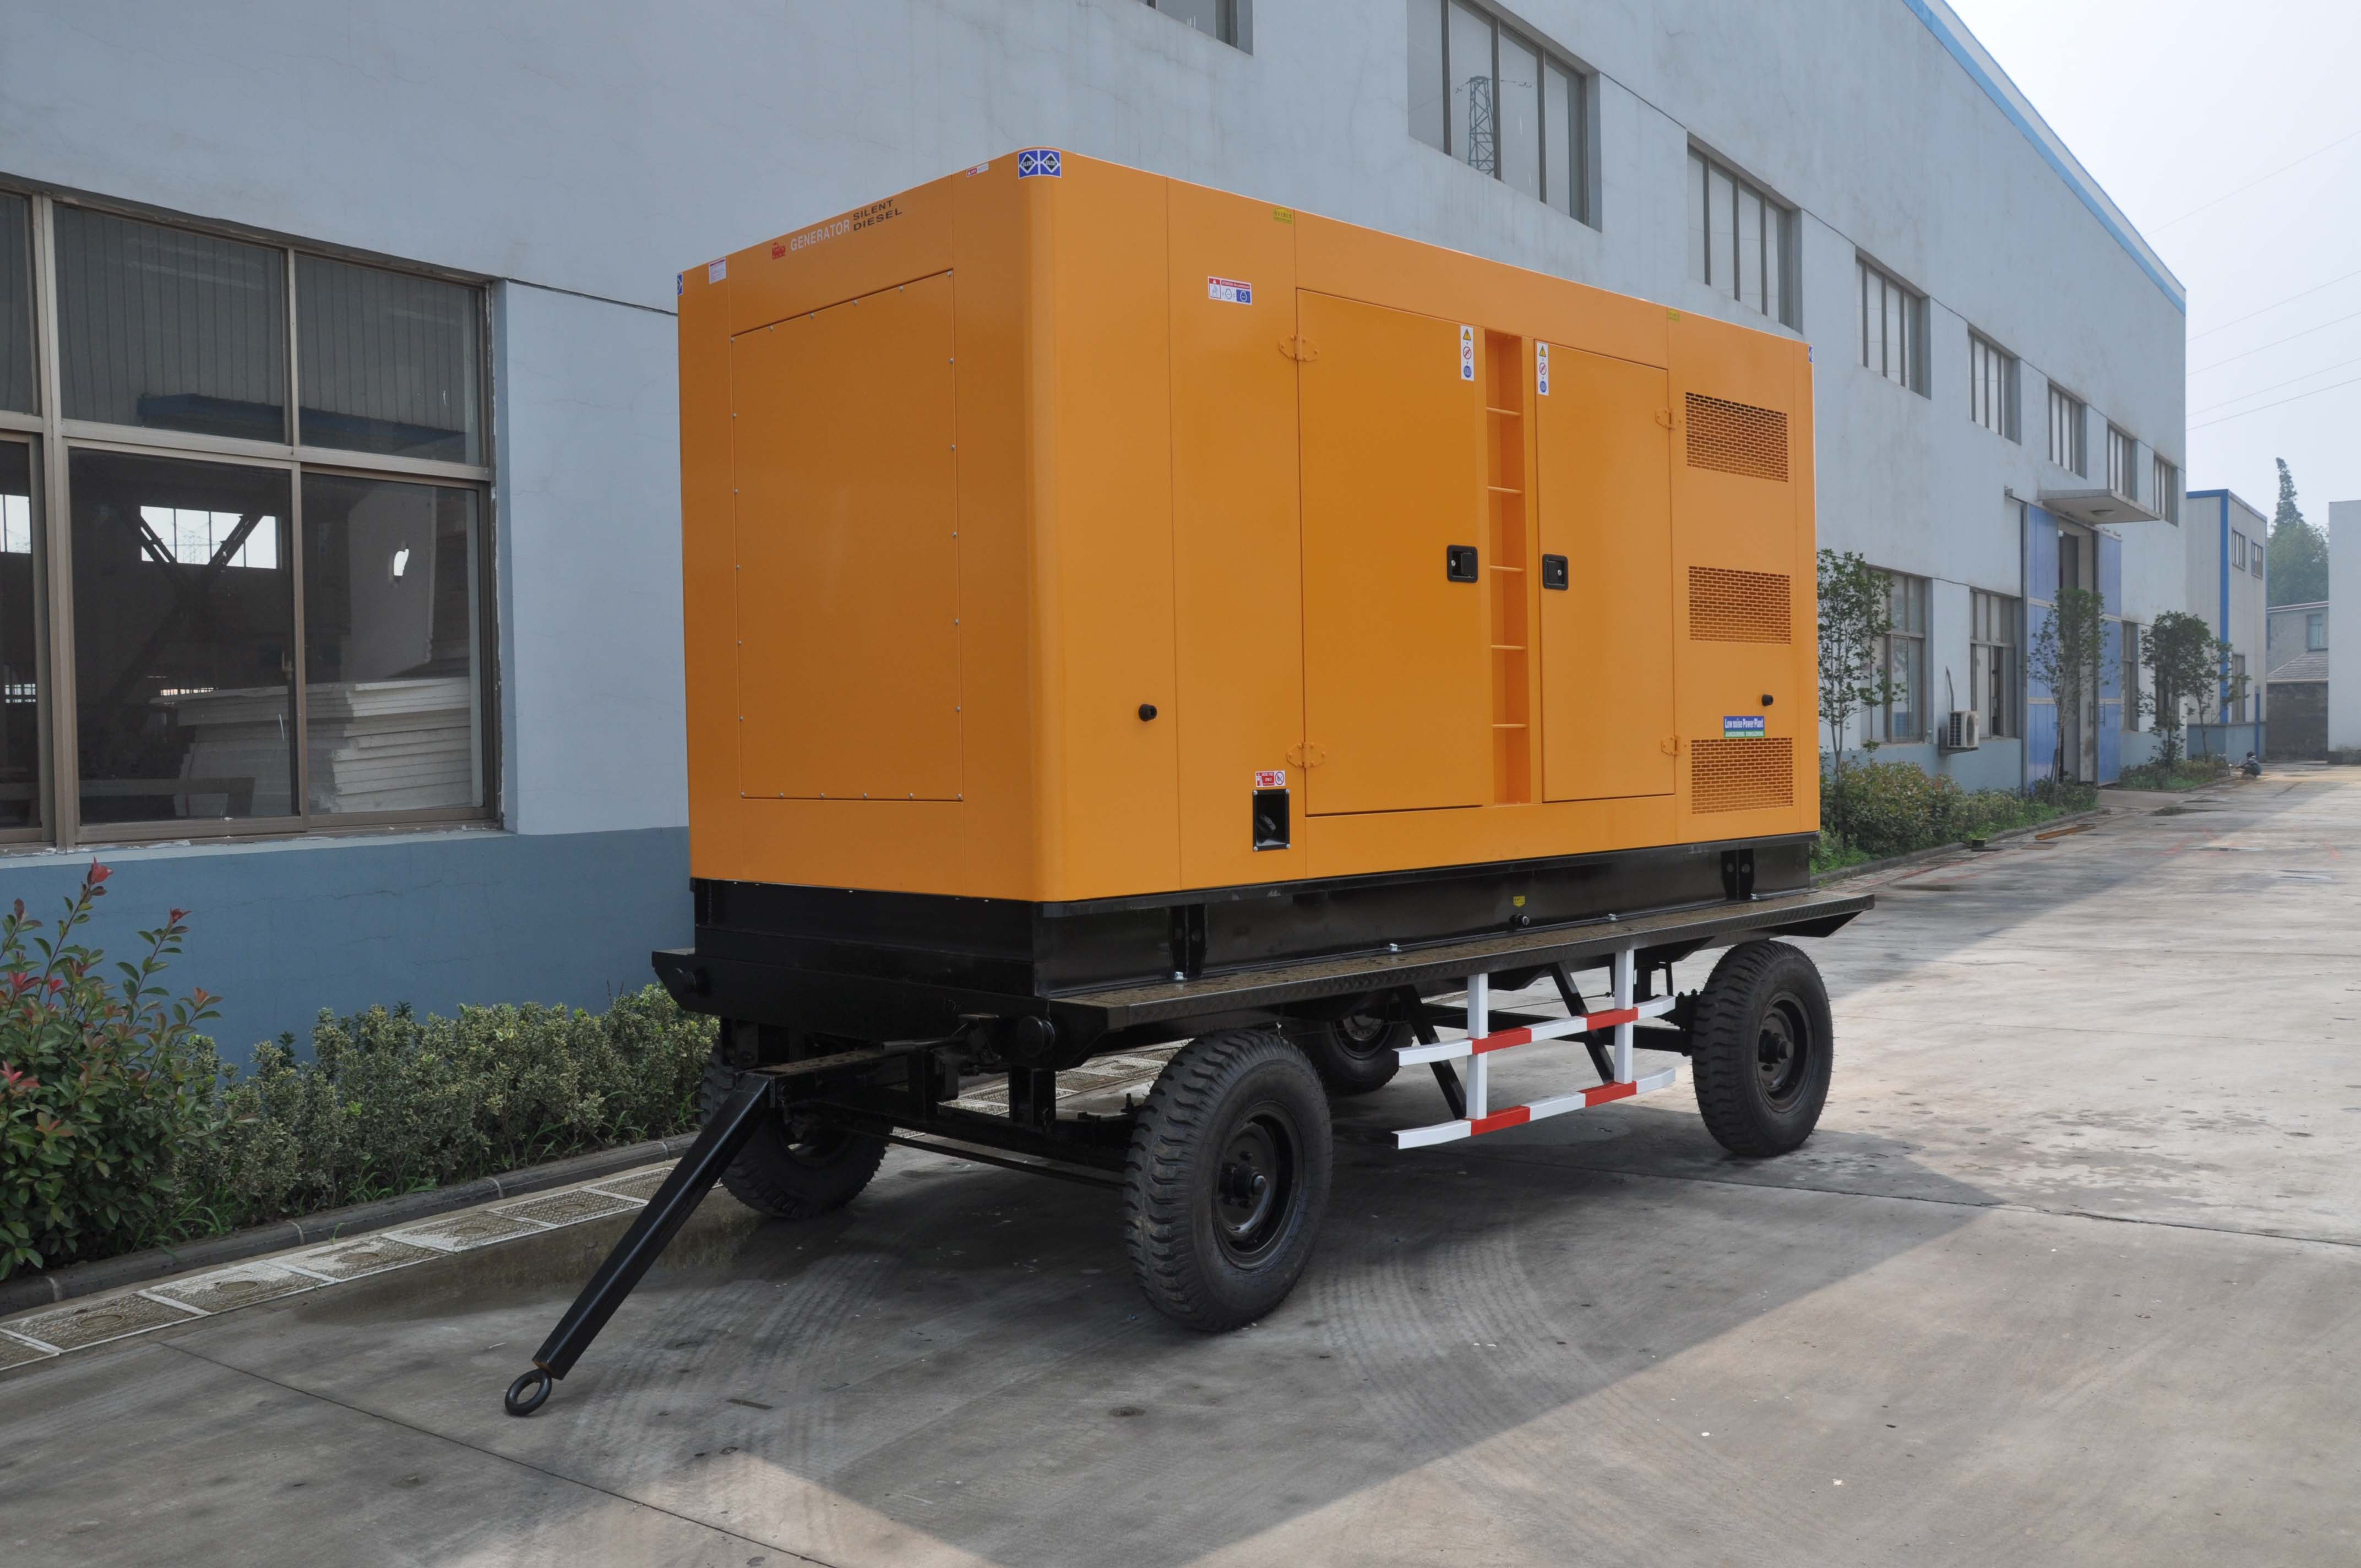 trailer generator from 20kw to 200kw with variety brand engines and alternators three phase